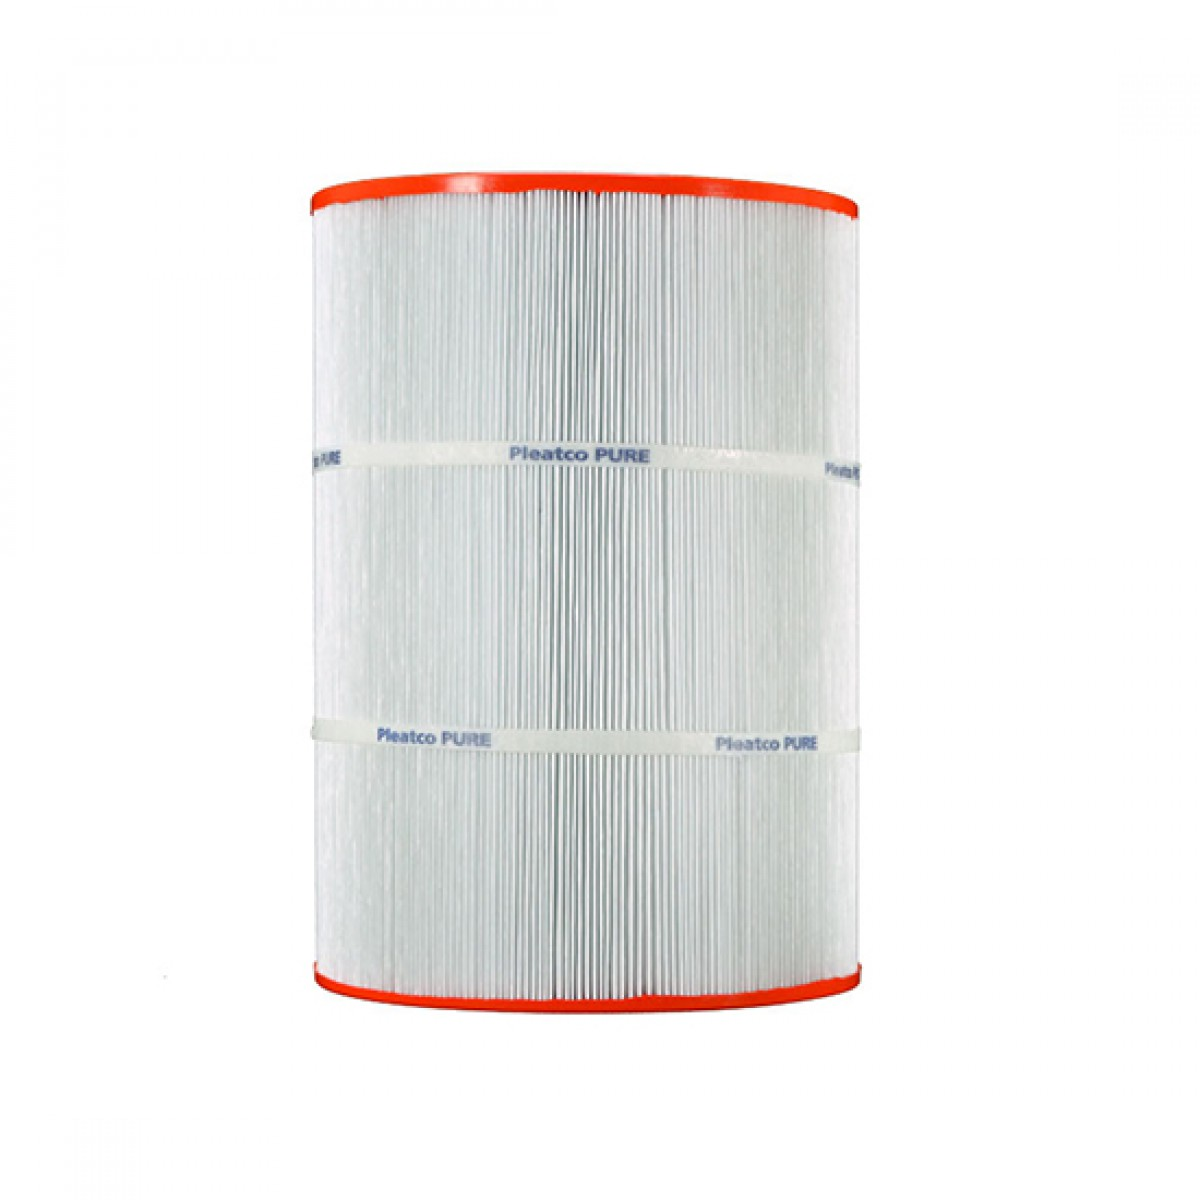 Jacuzzi Replacement Pool Filter Cartridge Pleatco Pj75 4 Replacement Pool And Spa Filter